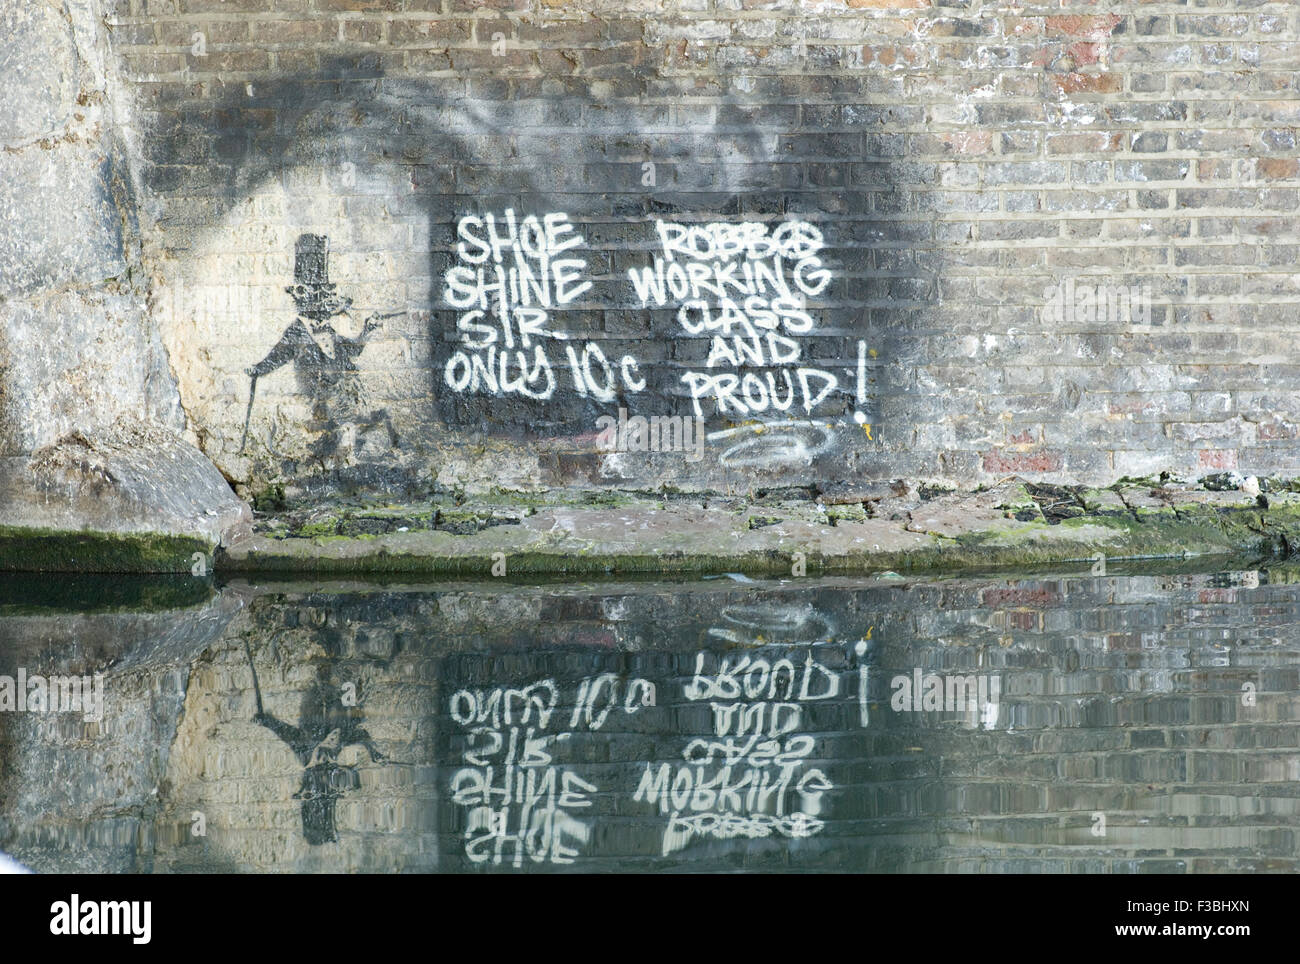 Rat graffiti by Banksy amended by Team Robbo with their message during the graffiti war of 2009-10 - Stock Image